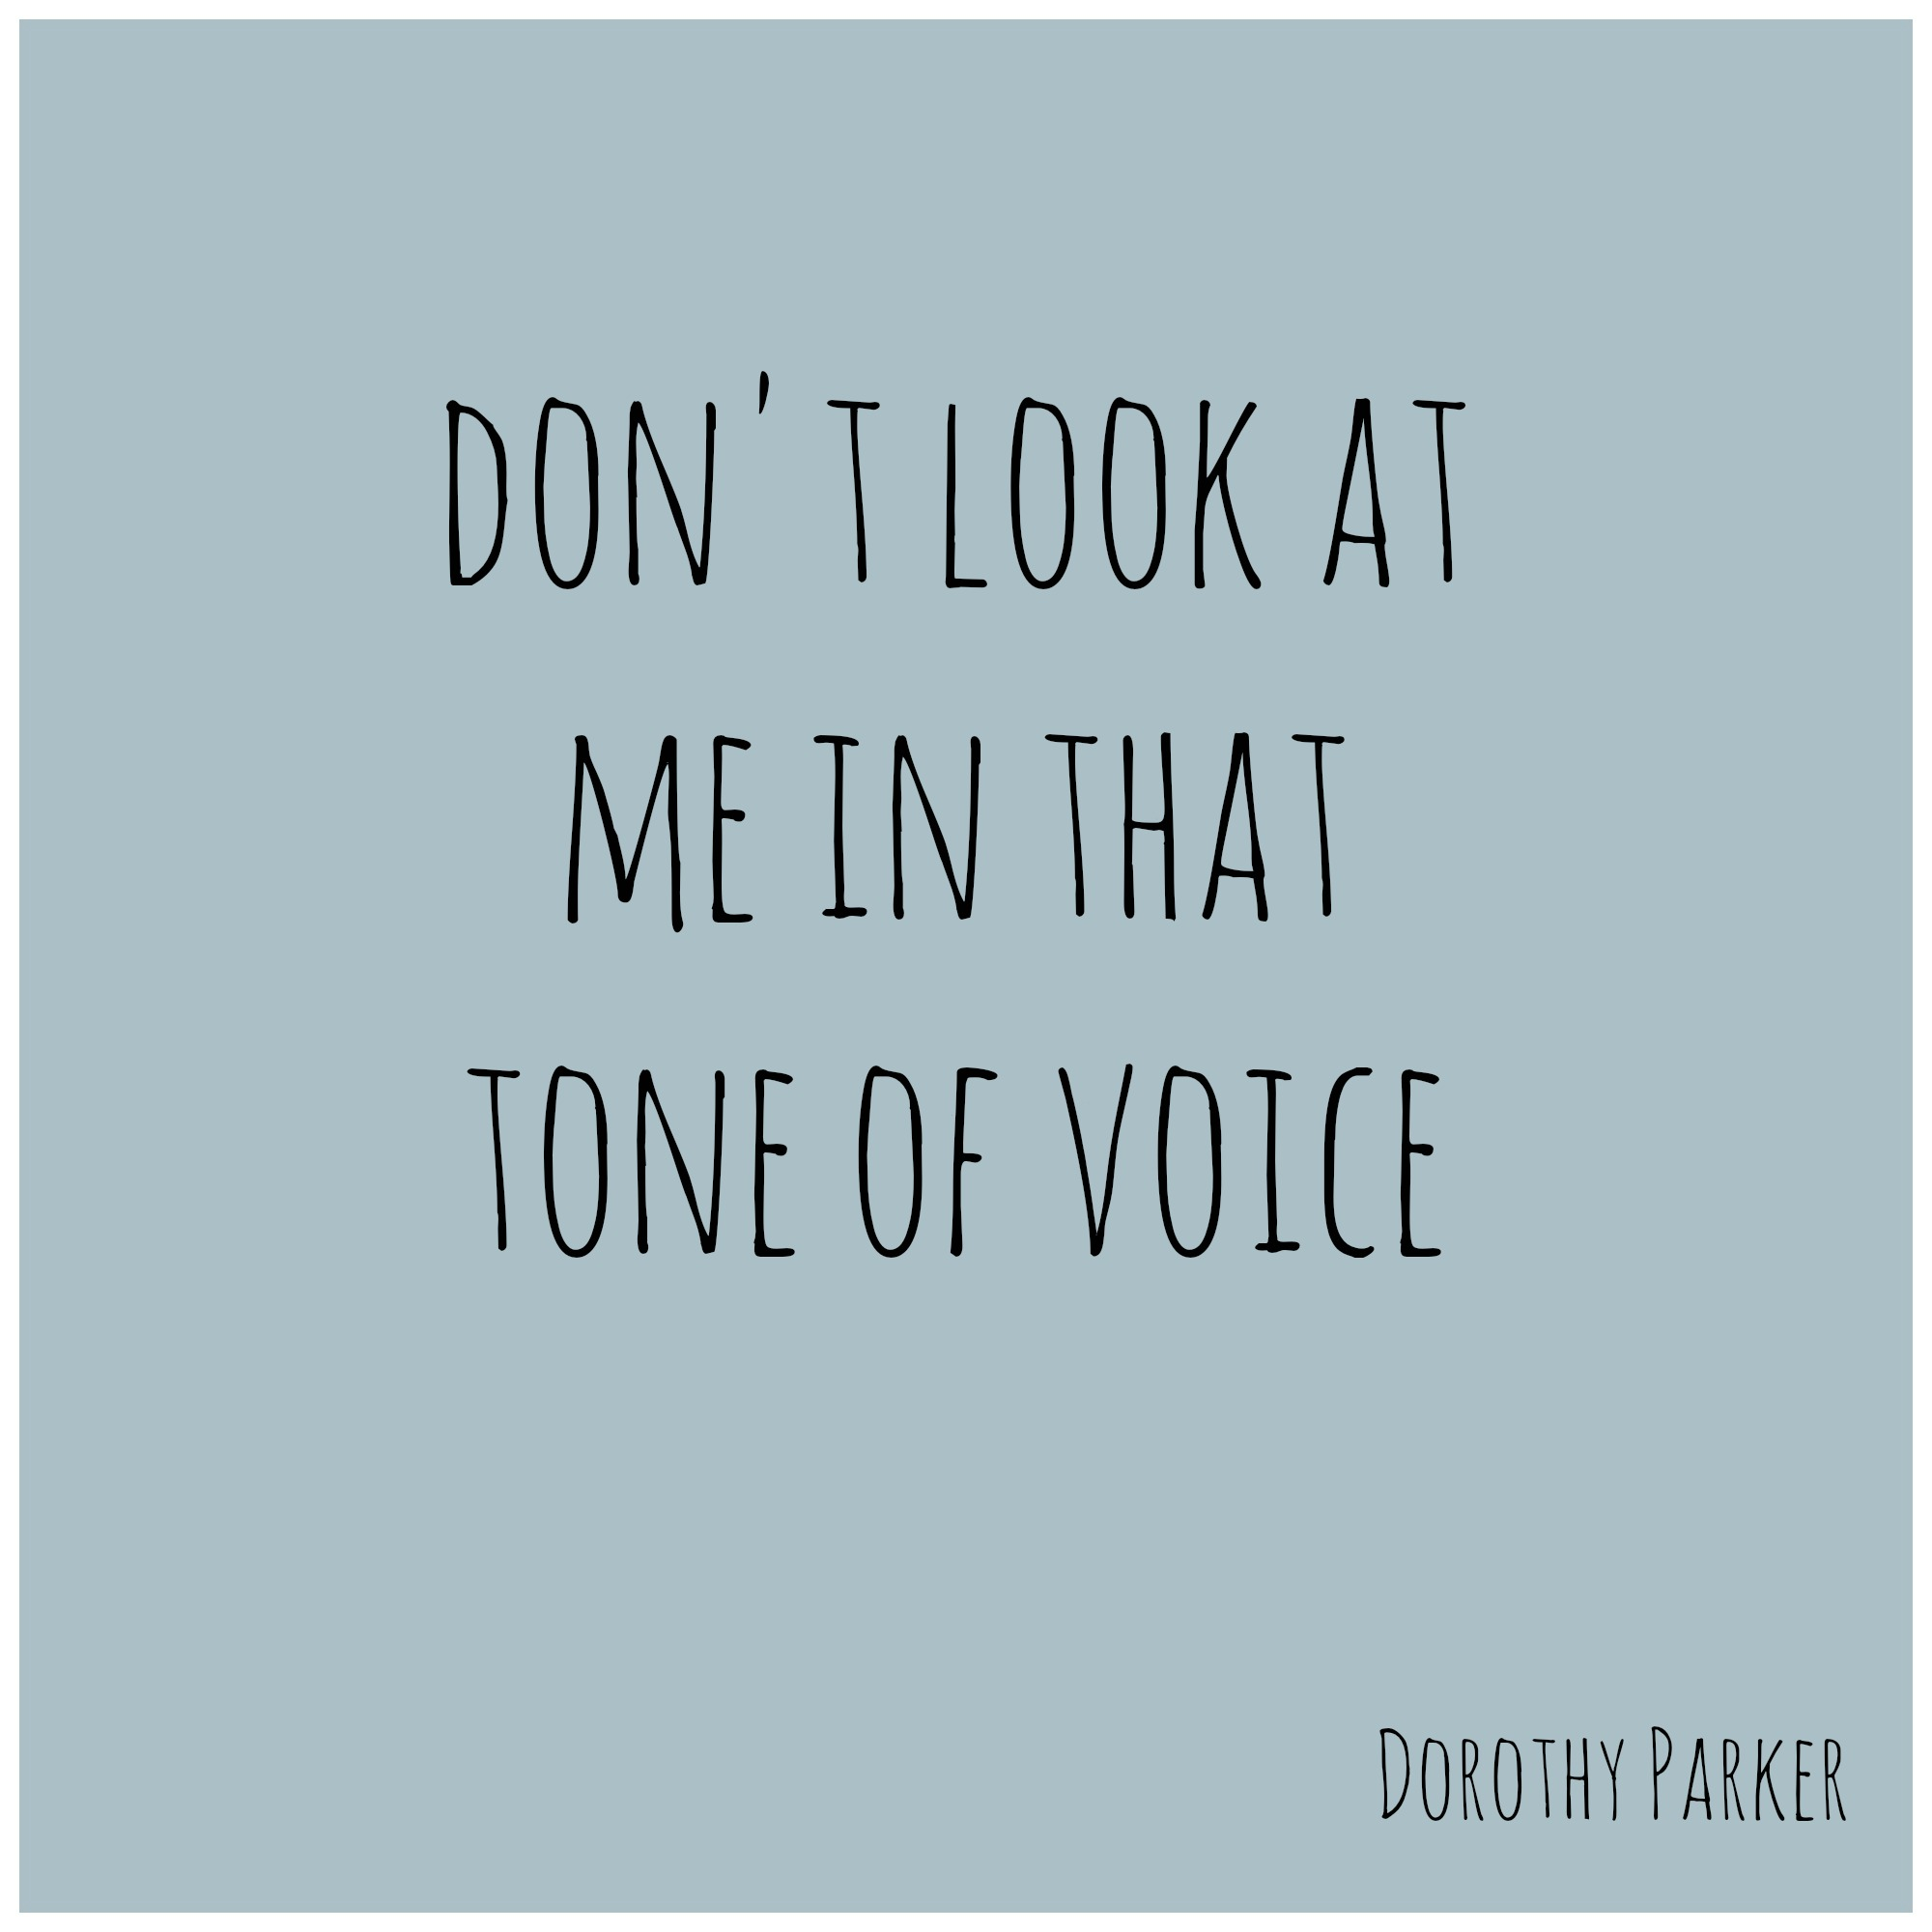 Dorothy Parker Tone Of Voice Quote